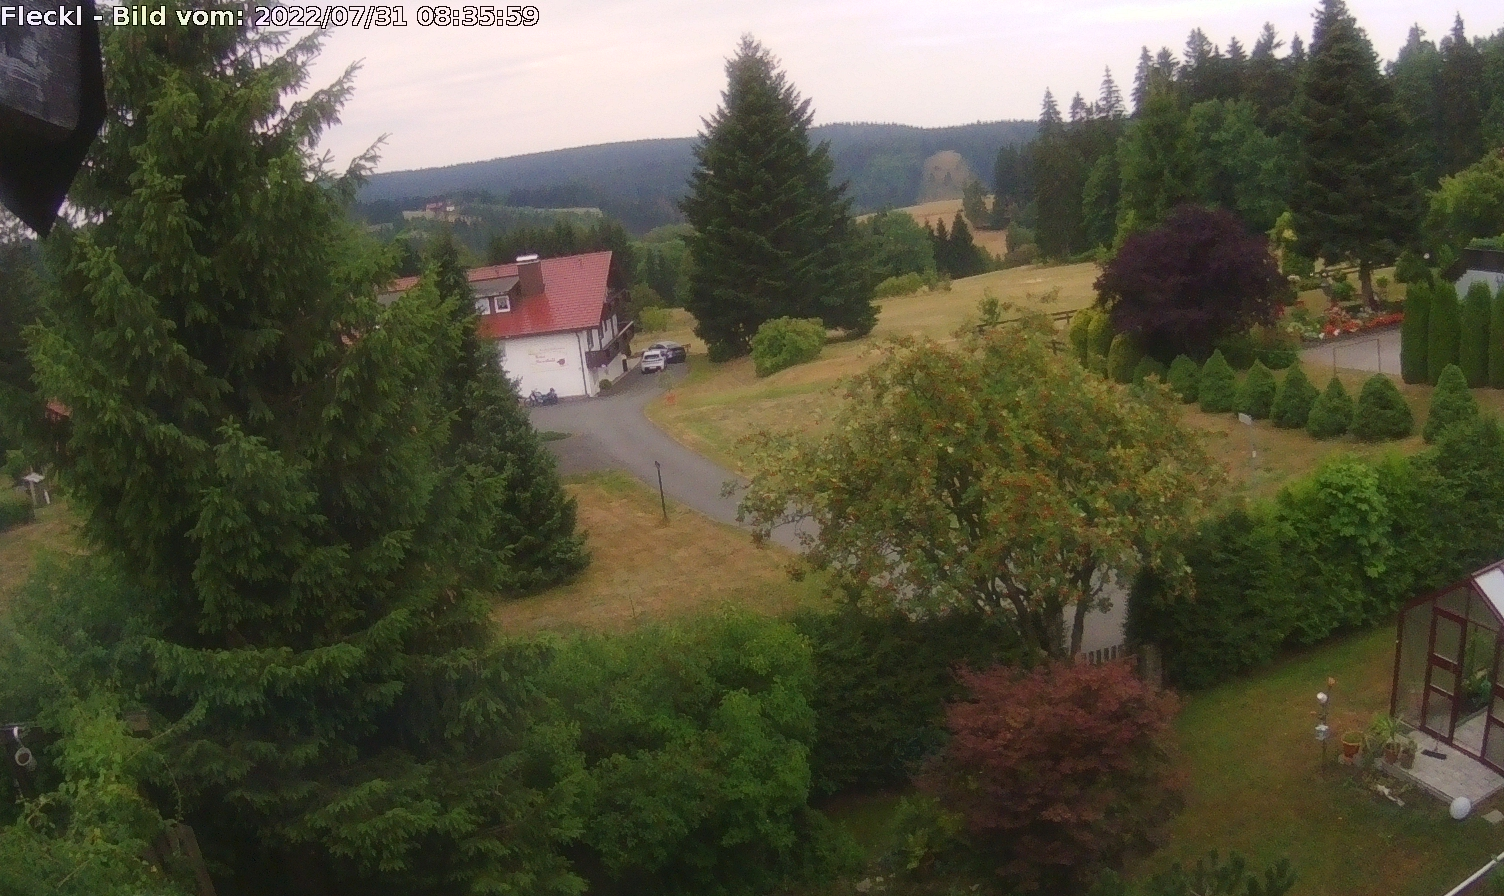 Webcam Fleckl Warmensteinach Fichtelgebirge Wetter